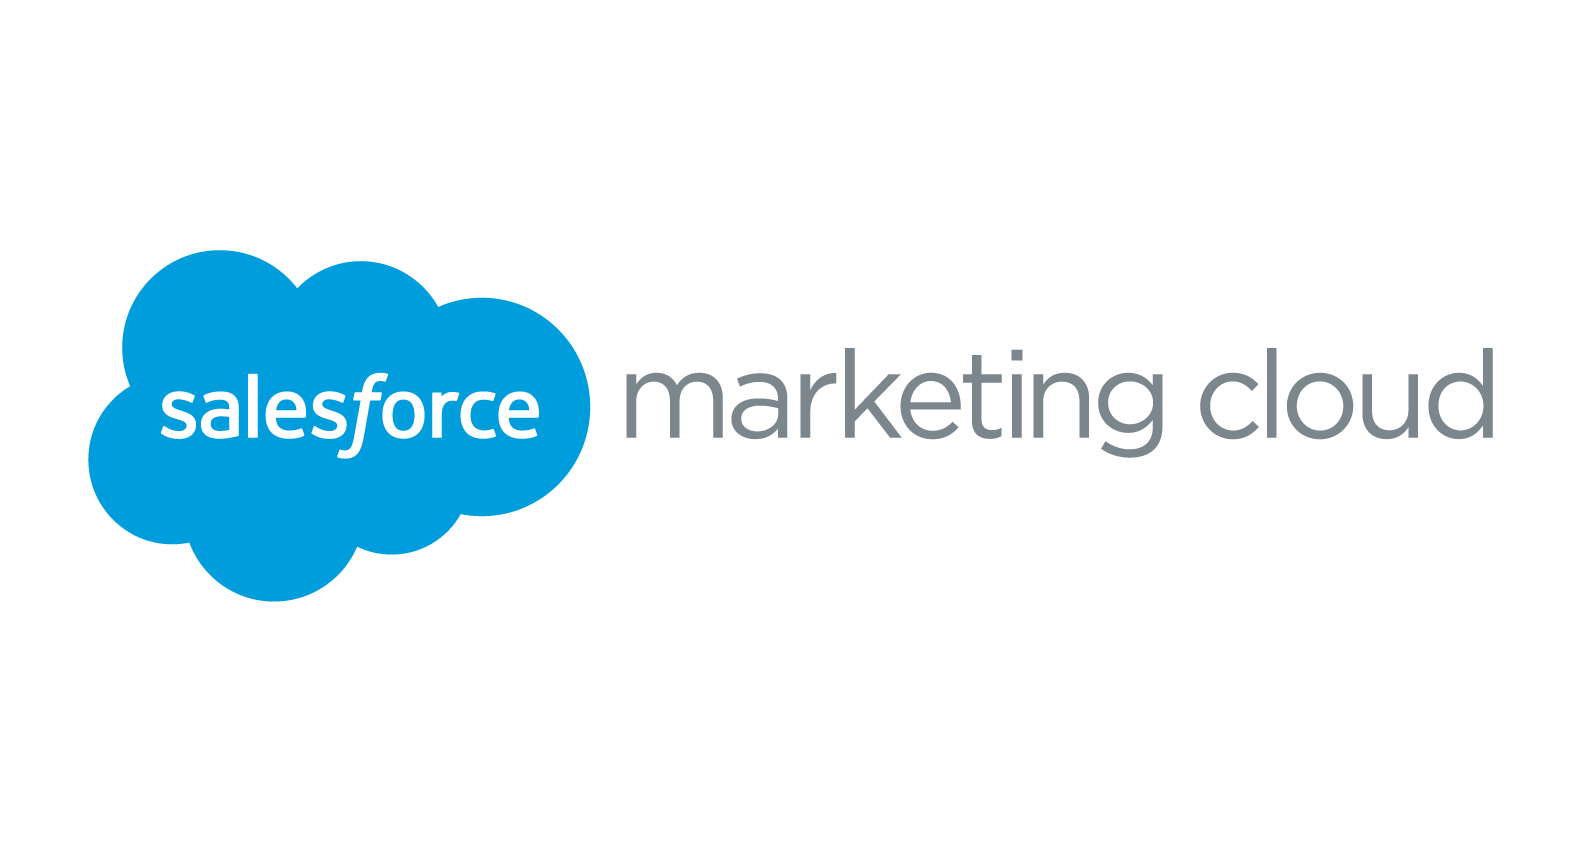 The Salesforce Marketing Cloud